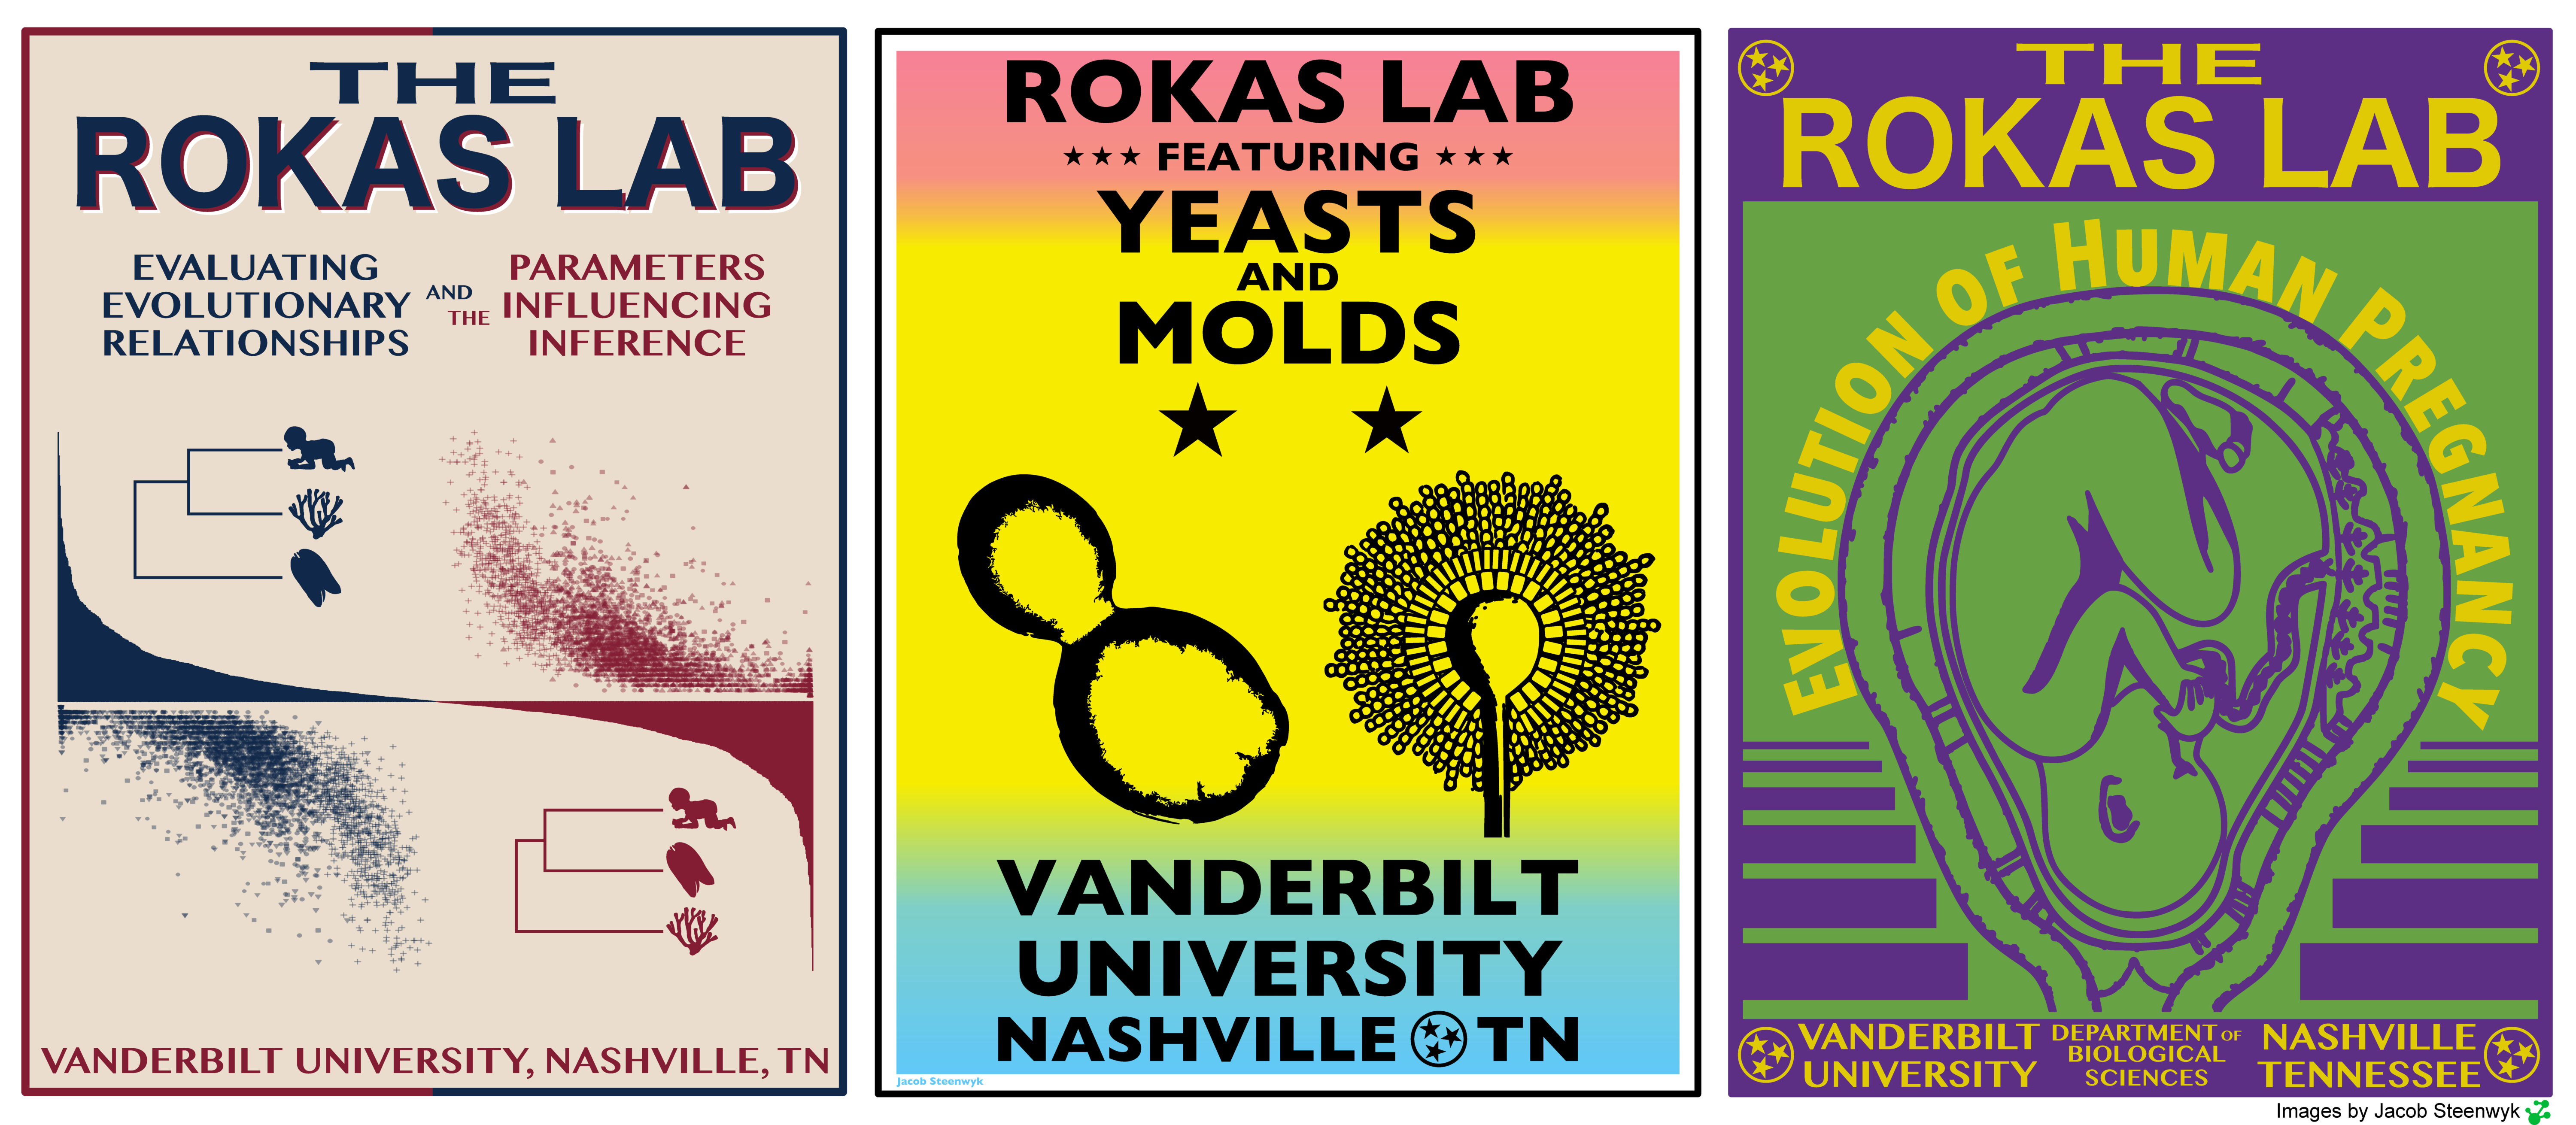 "A collage of posters created for the Rokas Lab. Poster 1: tan background, blue and red diagrams showing a bracket connecting an infant, coral, and jellyfish and text saying ""The Rokas Lab: Evaluating Evolutionary Relationships and the Parameters Influencing Inference, Vanderbilt University, Nashville, TN""; Poster 2: a pink, yellow, and blue background with black graphics of yeasts and molds and text saying ""Rokas Lab: Featuring Yeast and Molds, Vanderbilt University, Nashville, TN""; Poster 3: a green and purple background with a graphic of a fetus inside a uterus and text saying ""The Rokas Lab: Evolution of Human Pregnancy, Vanderbilt University Department of Biological Sciences, Nashville, Tennessee."""